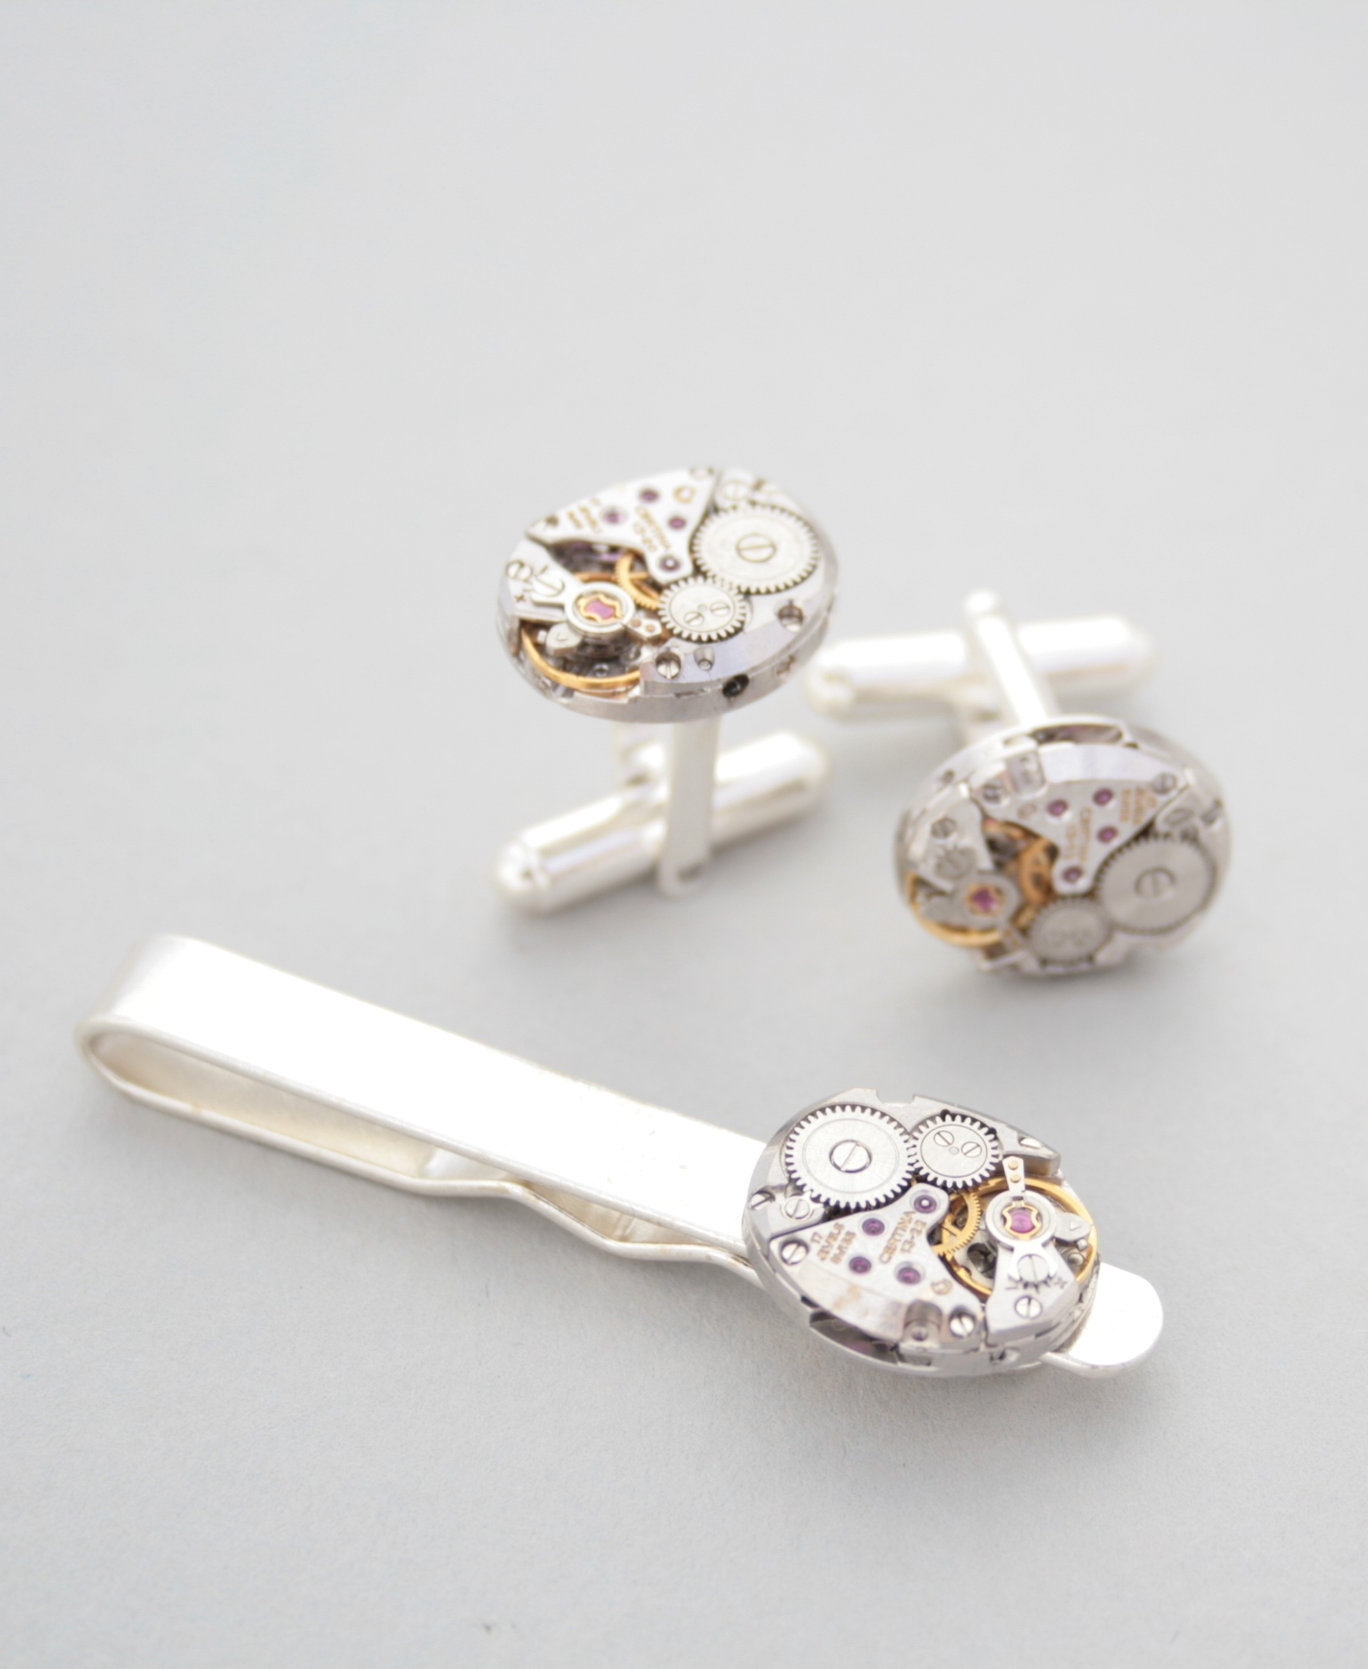 Sterling Tie Clip and Cufflinks with Steampunk Watch Movements